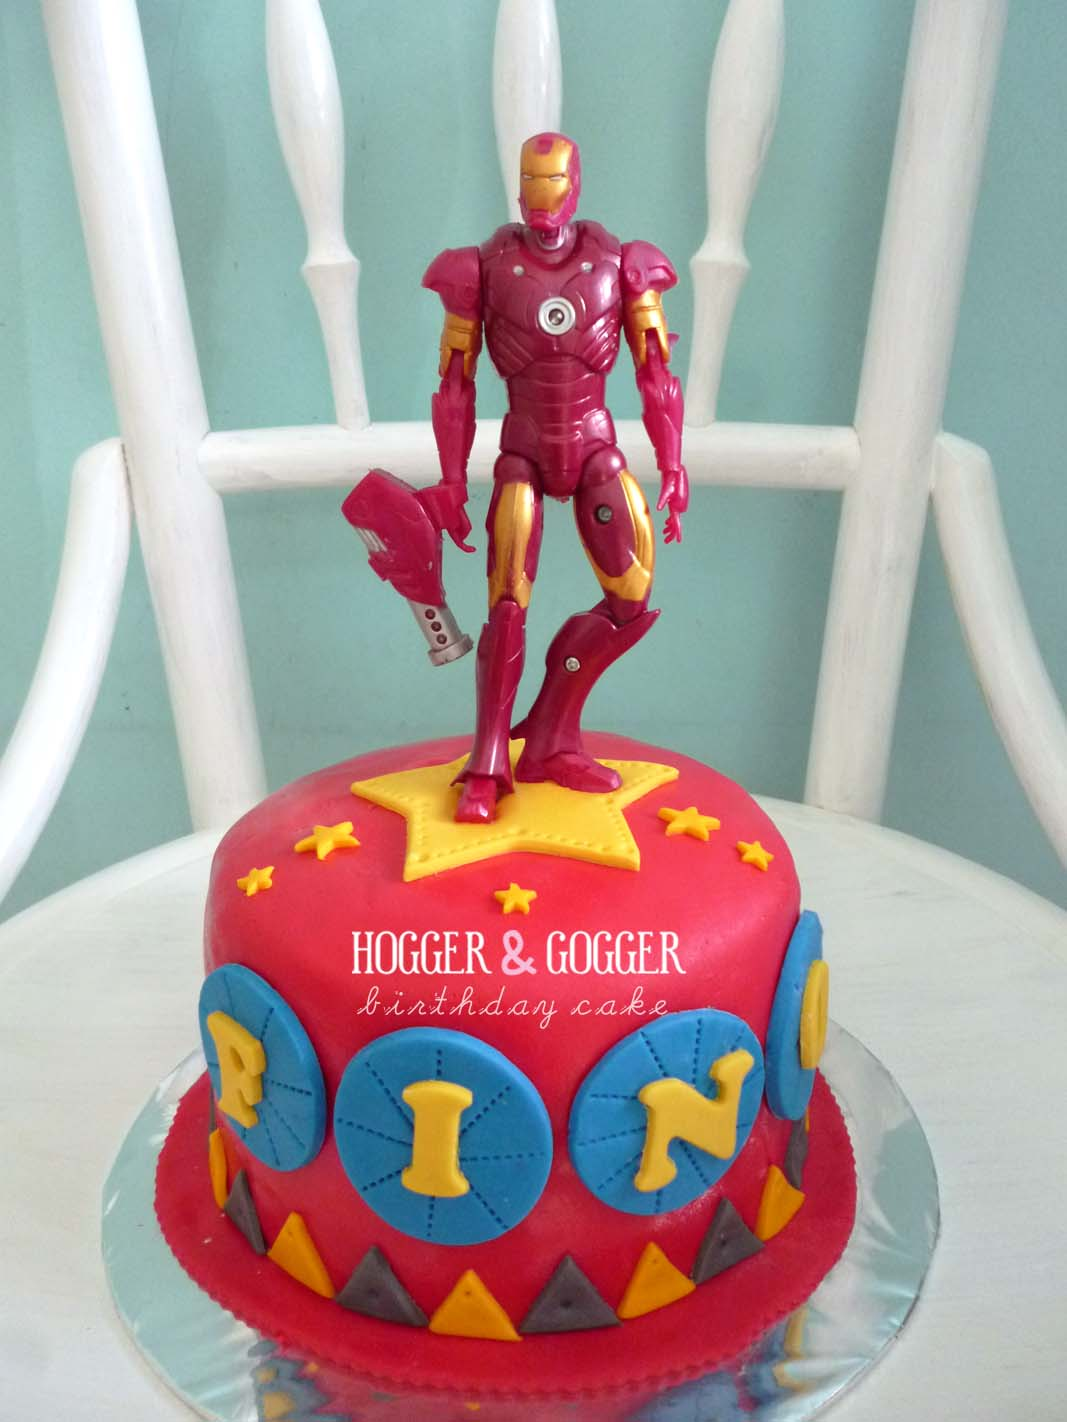 Hogger&Gogger: Iron Man Birthday Cake